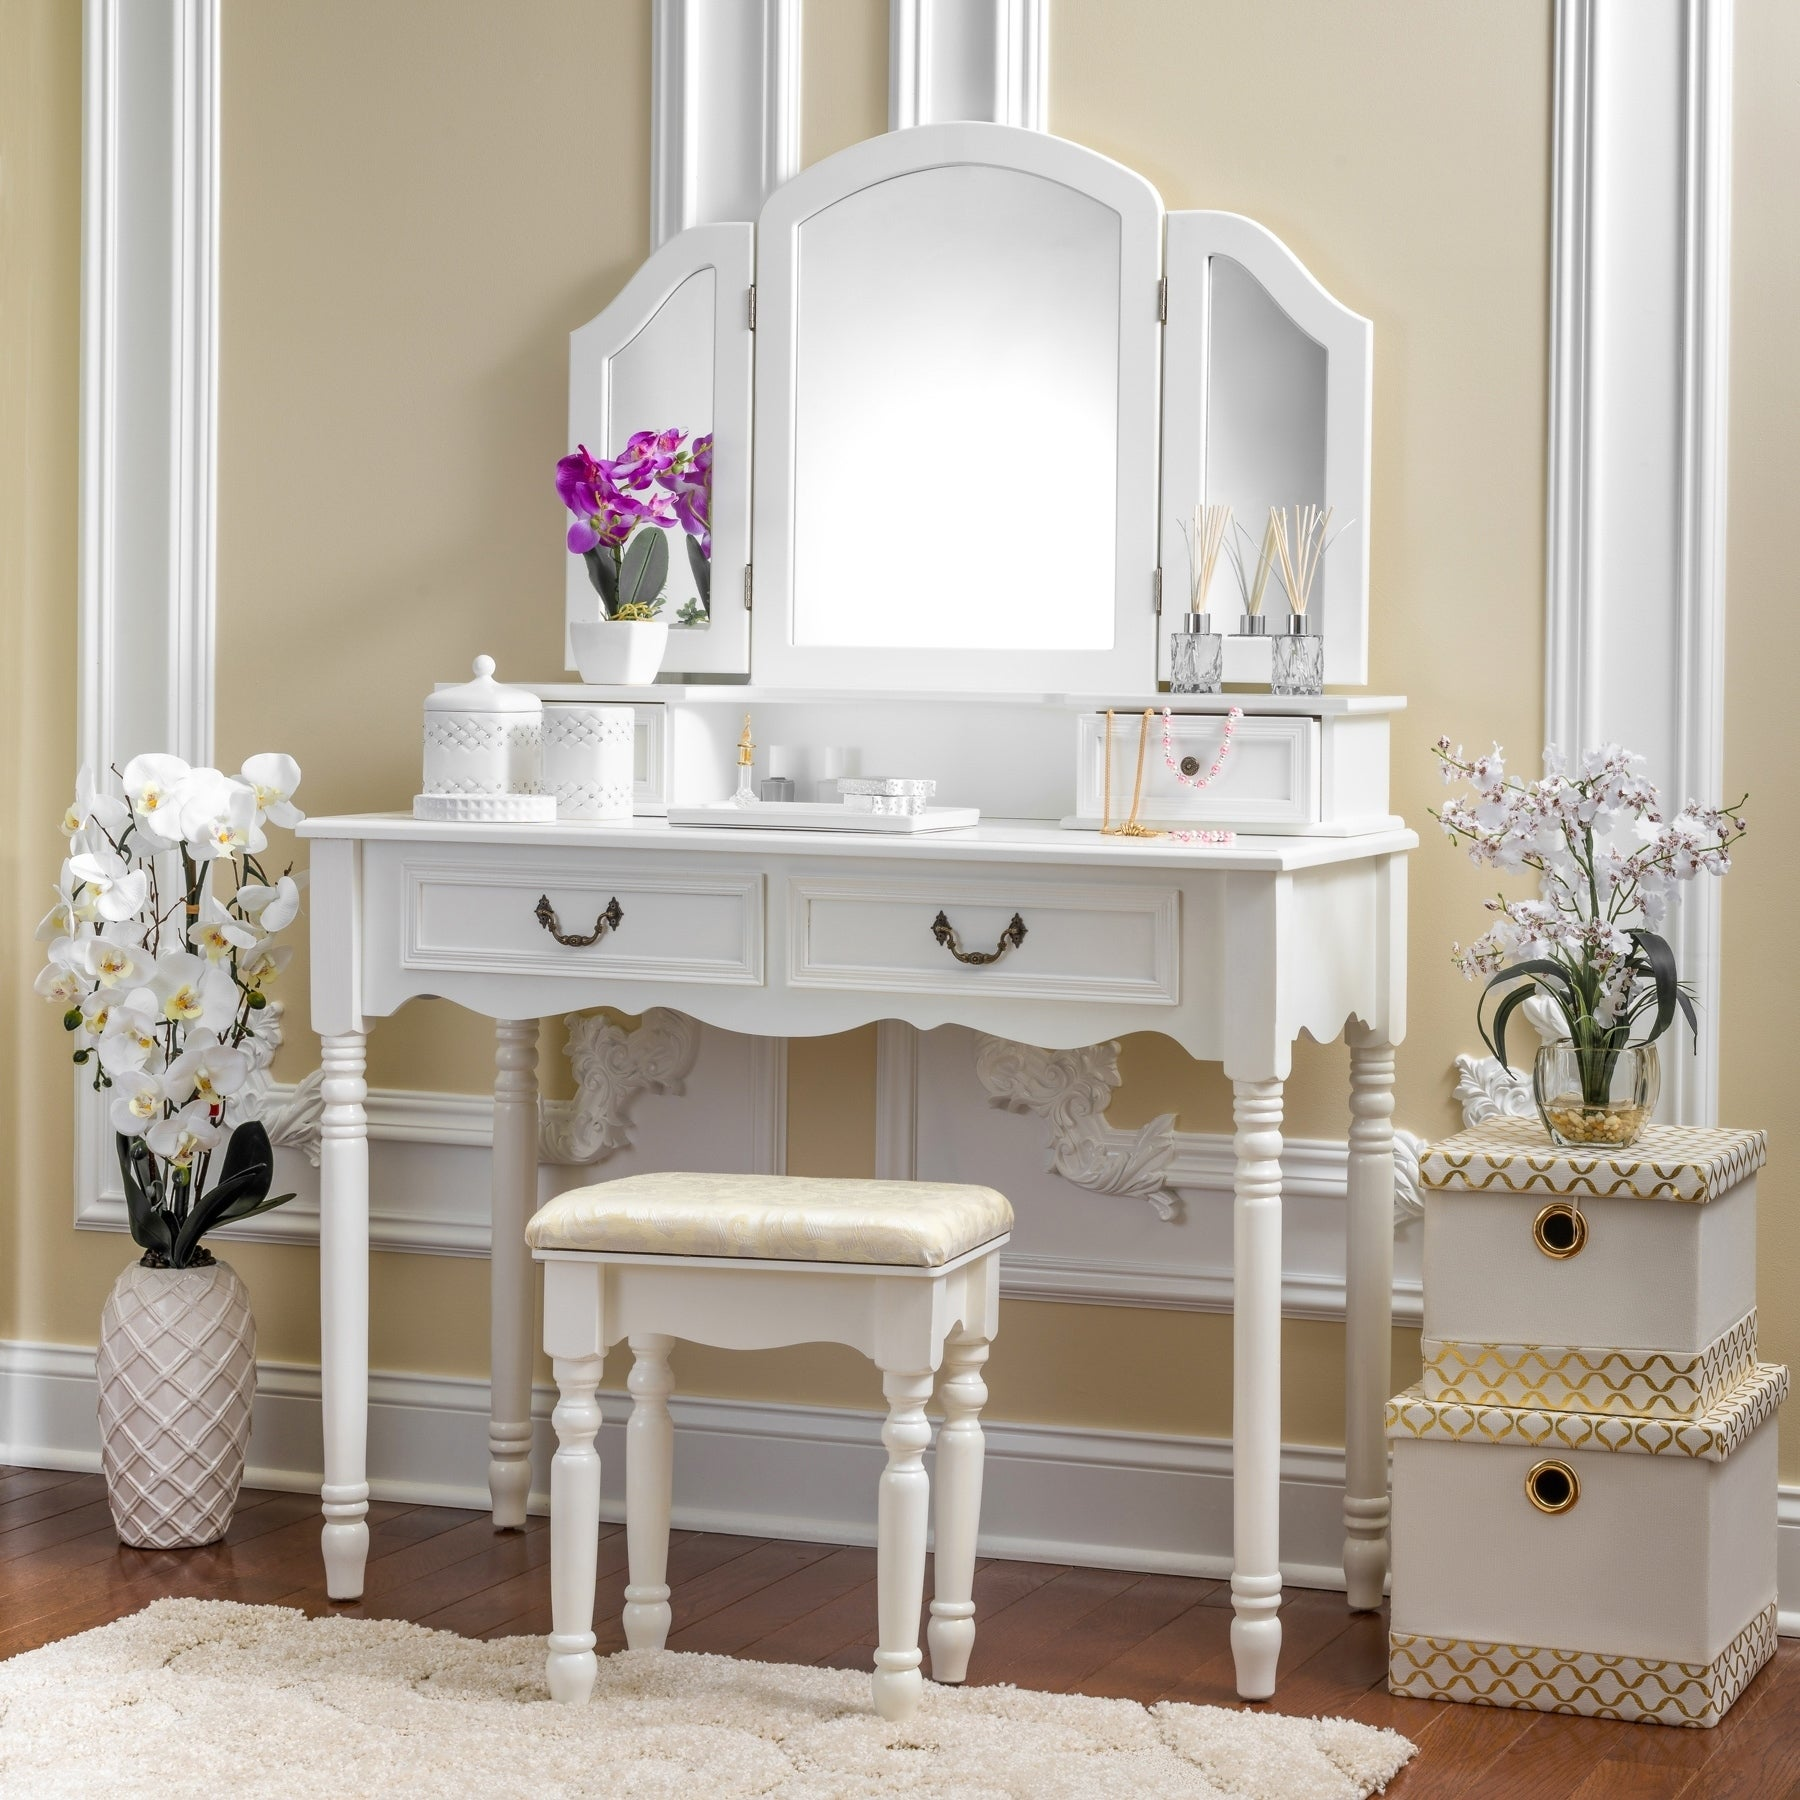 makeup three small ikea vanity carved for on classic wooden table mirror white drawers with drawer two lights dressing design flooring